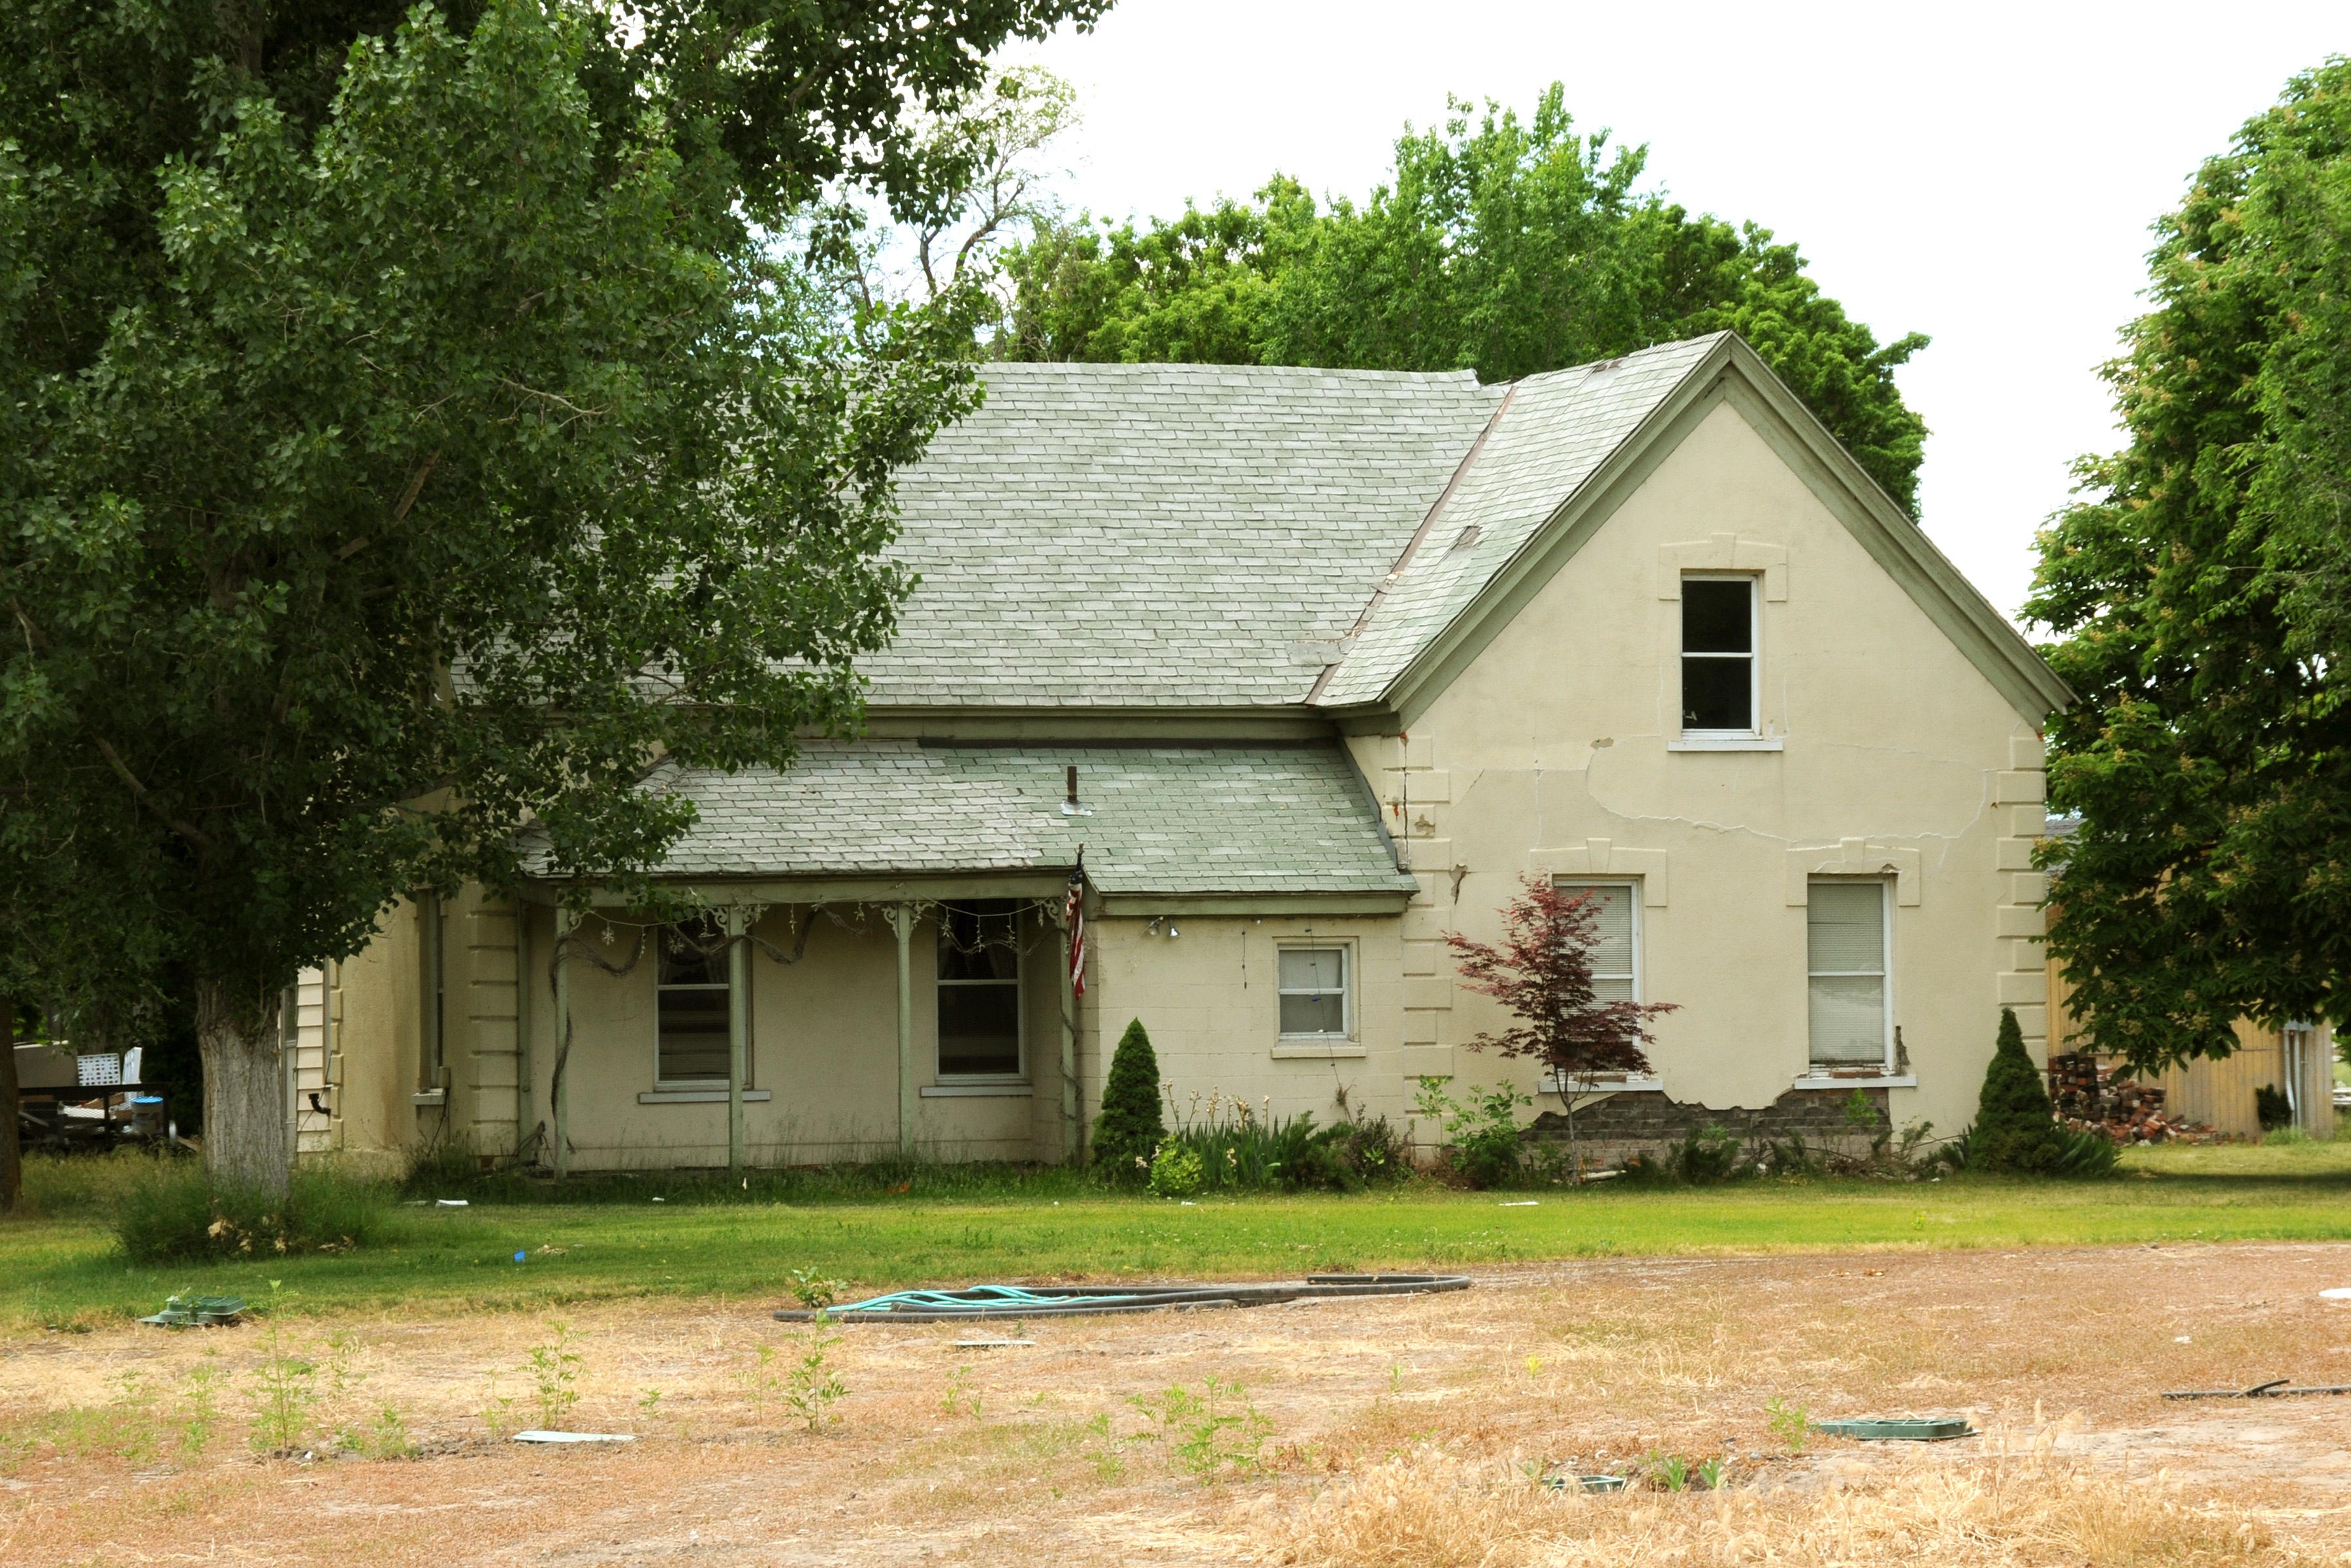 The Thomas Roueche home where John Taylor, third president of the church, died. The home has since been torn down.